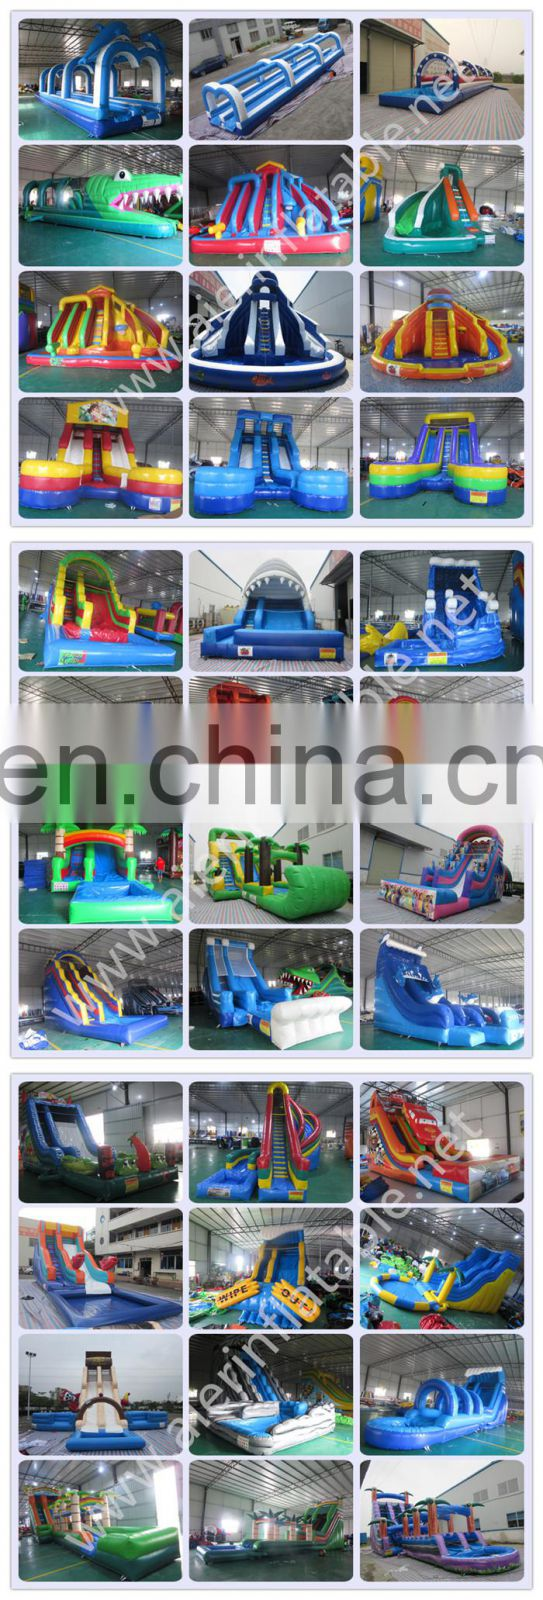 Aier Commerical water slide/Cheap water slide/low price inflatable water slide